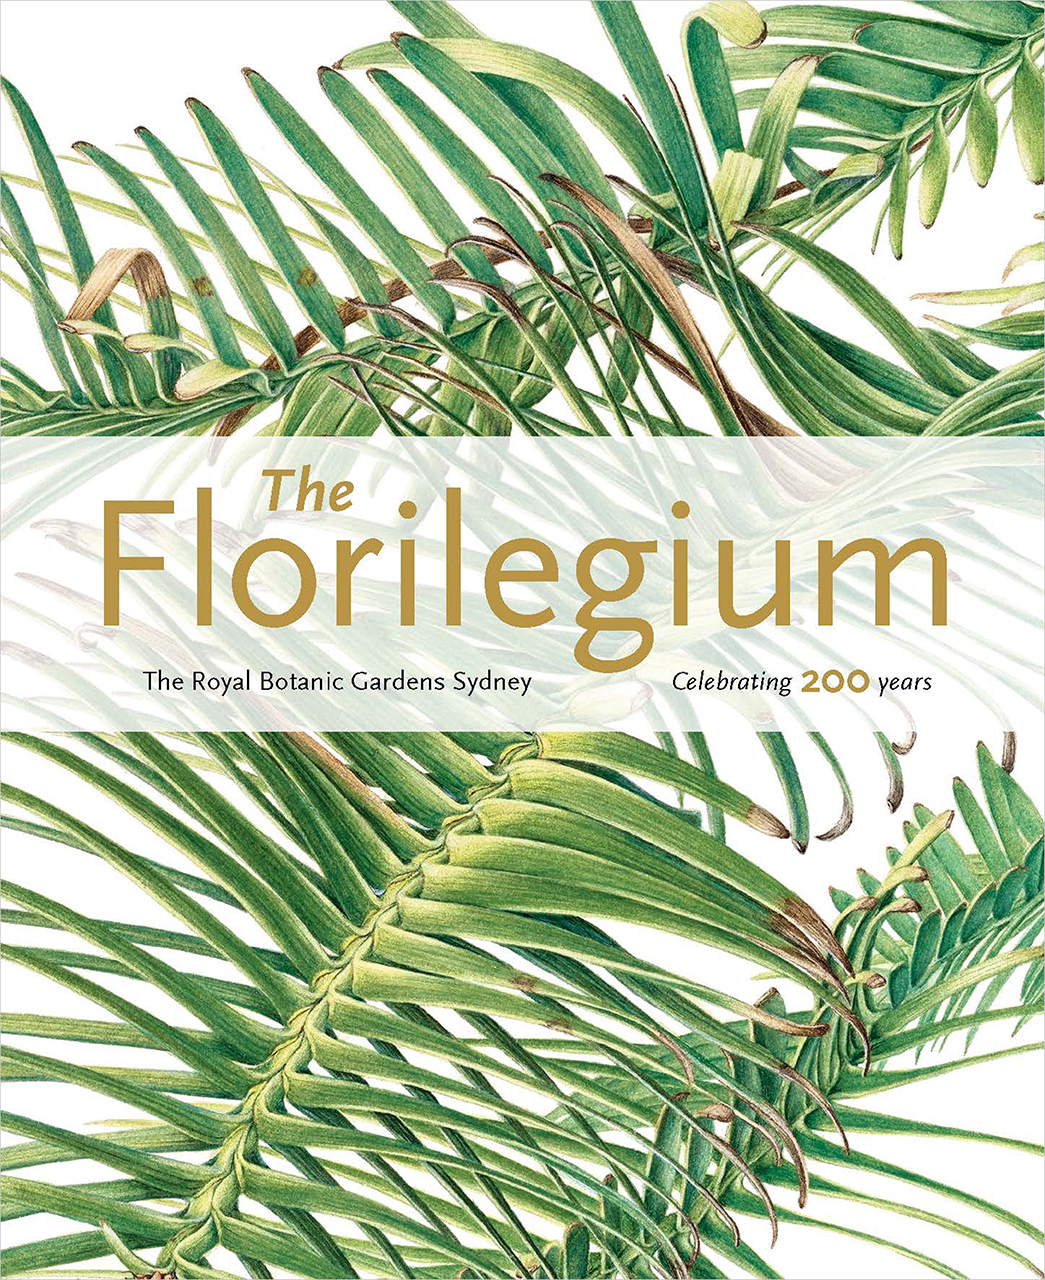 The Florilegium: The Royal Botanic Gardens Sydney